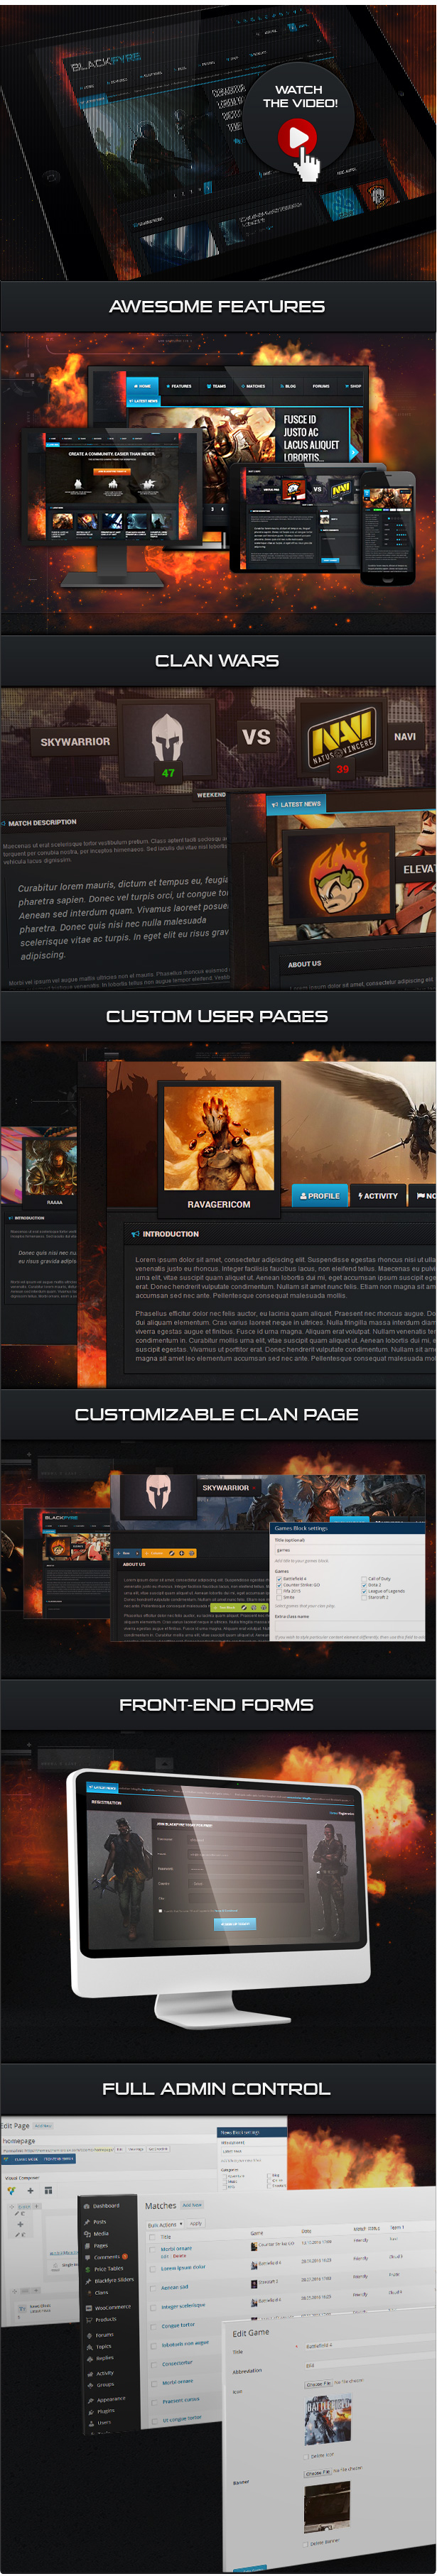 Blackfyre - Create Your Own Gaming Community - 2